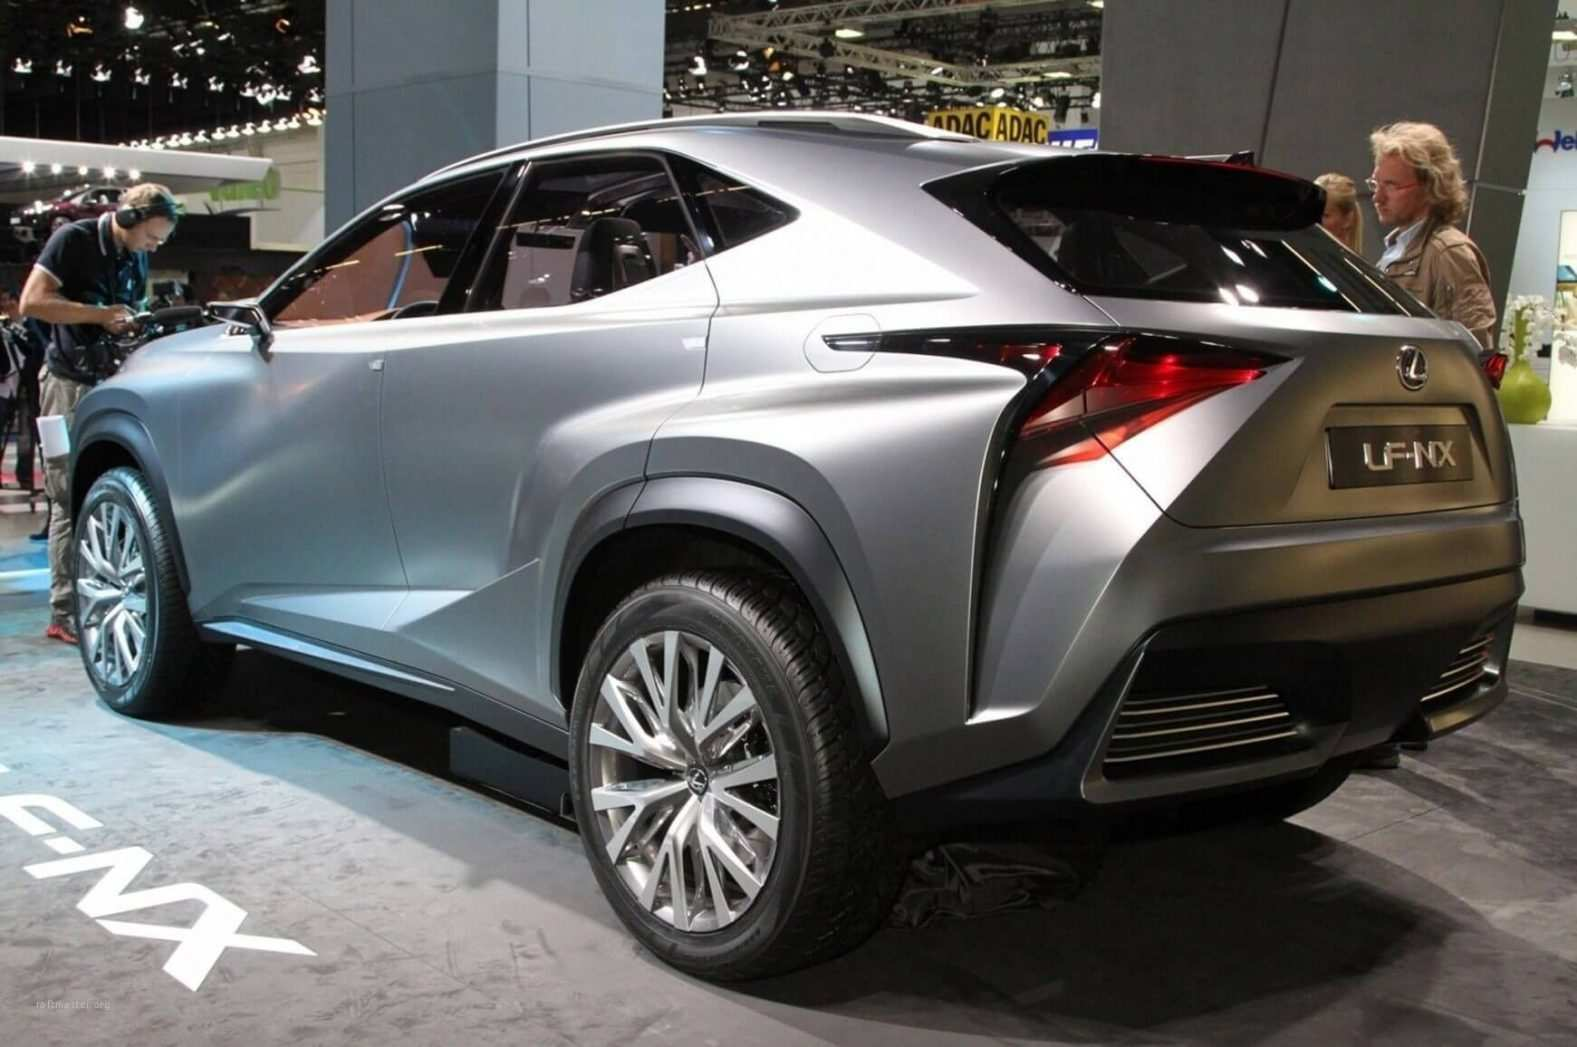 90 Best 2020 Lexus RX 350 Interior